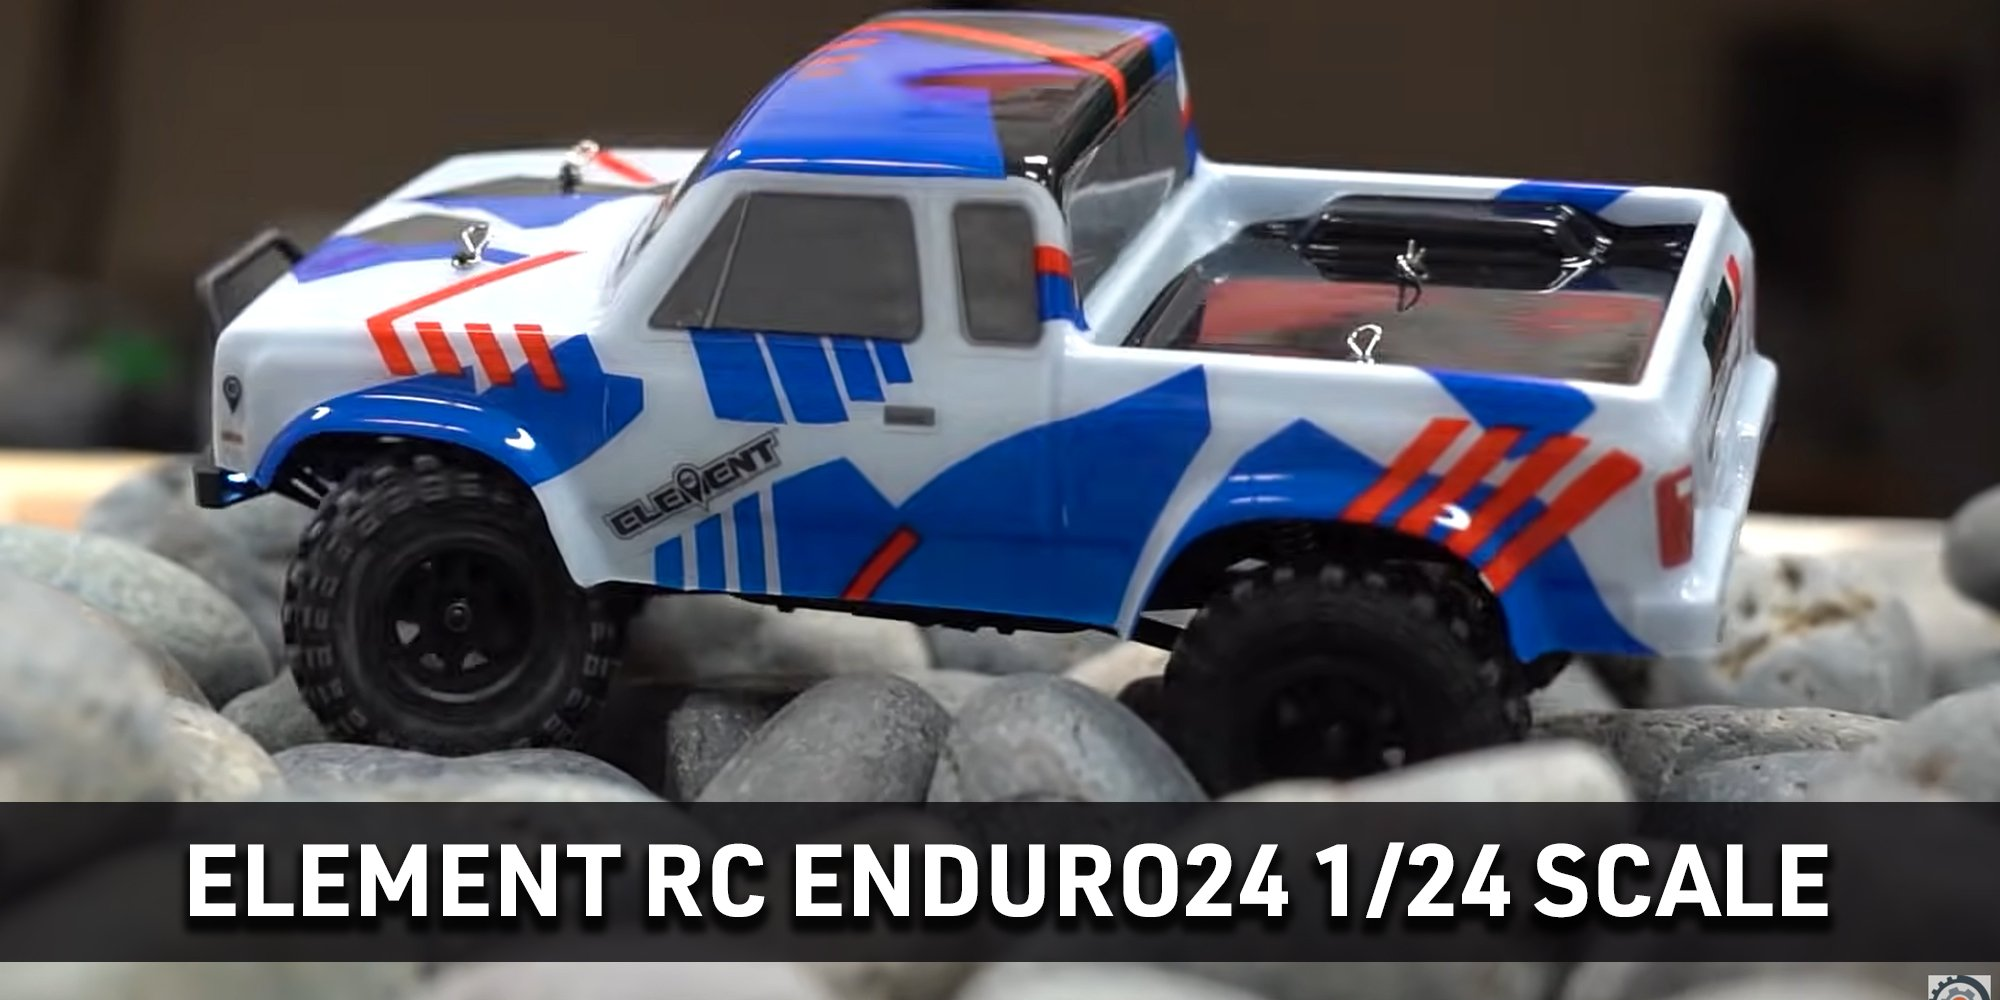 Element RC Enduro24 with Blue and Red Body